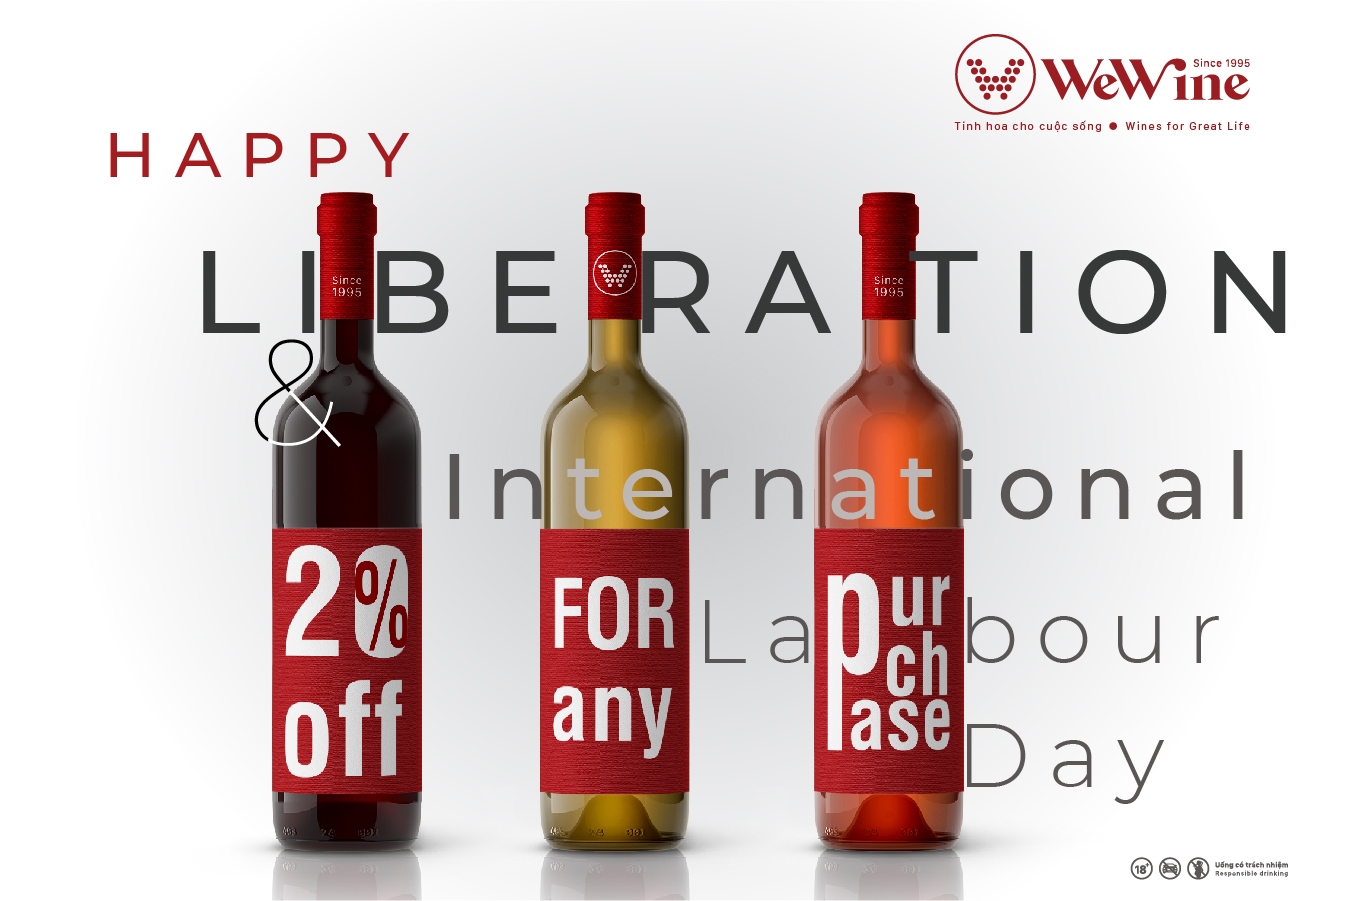 WeWine discount 20% all products in store